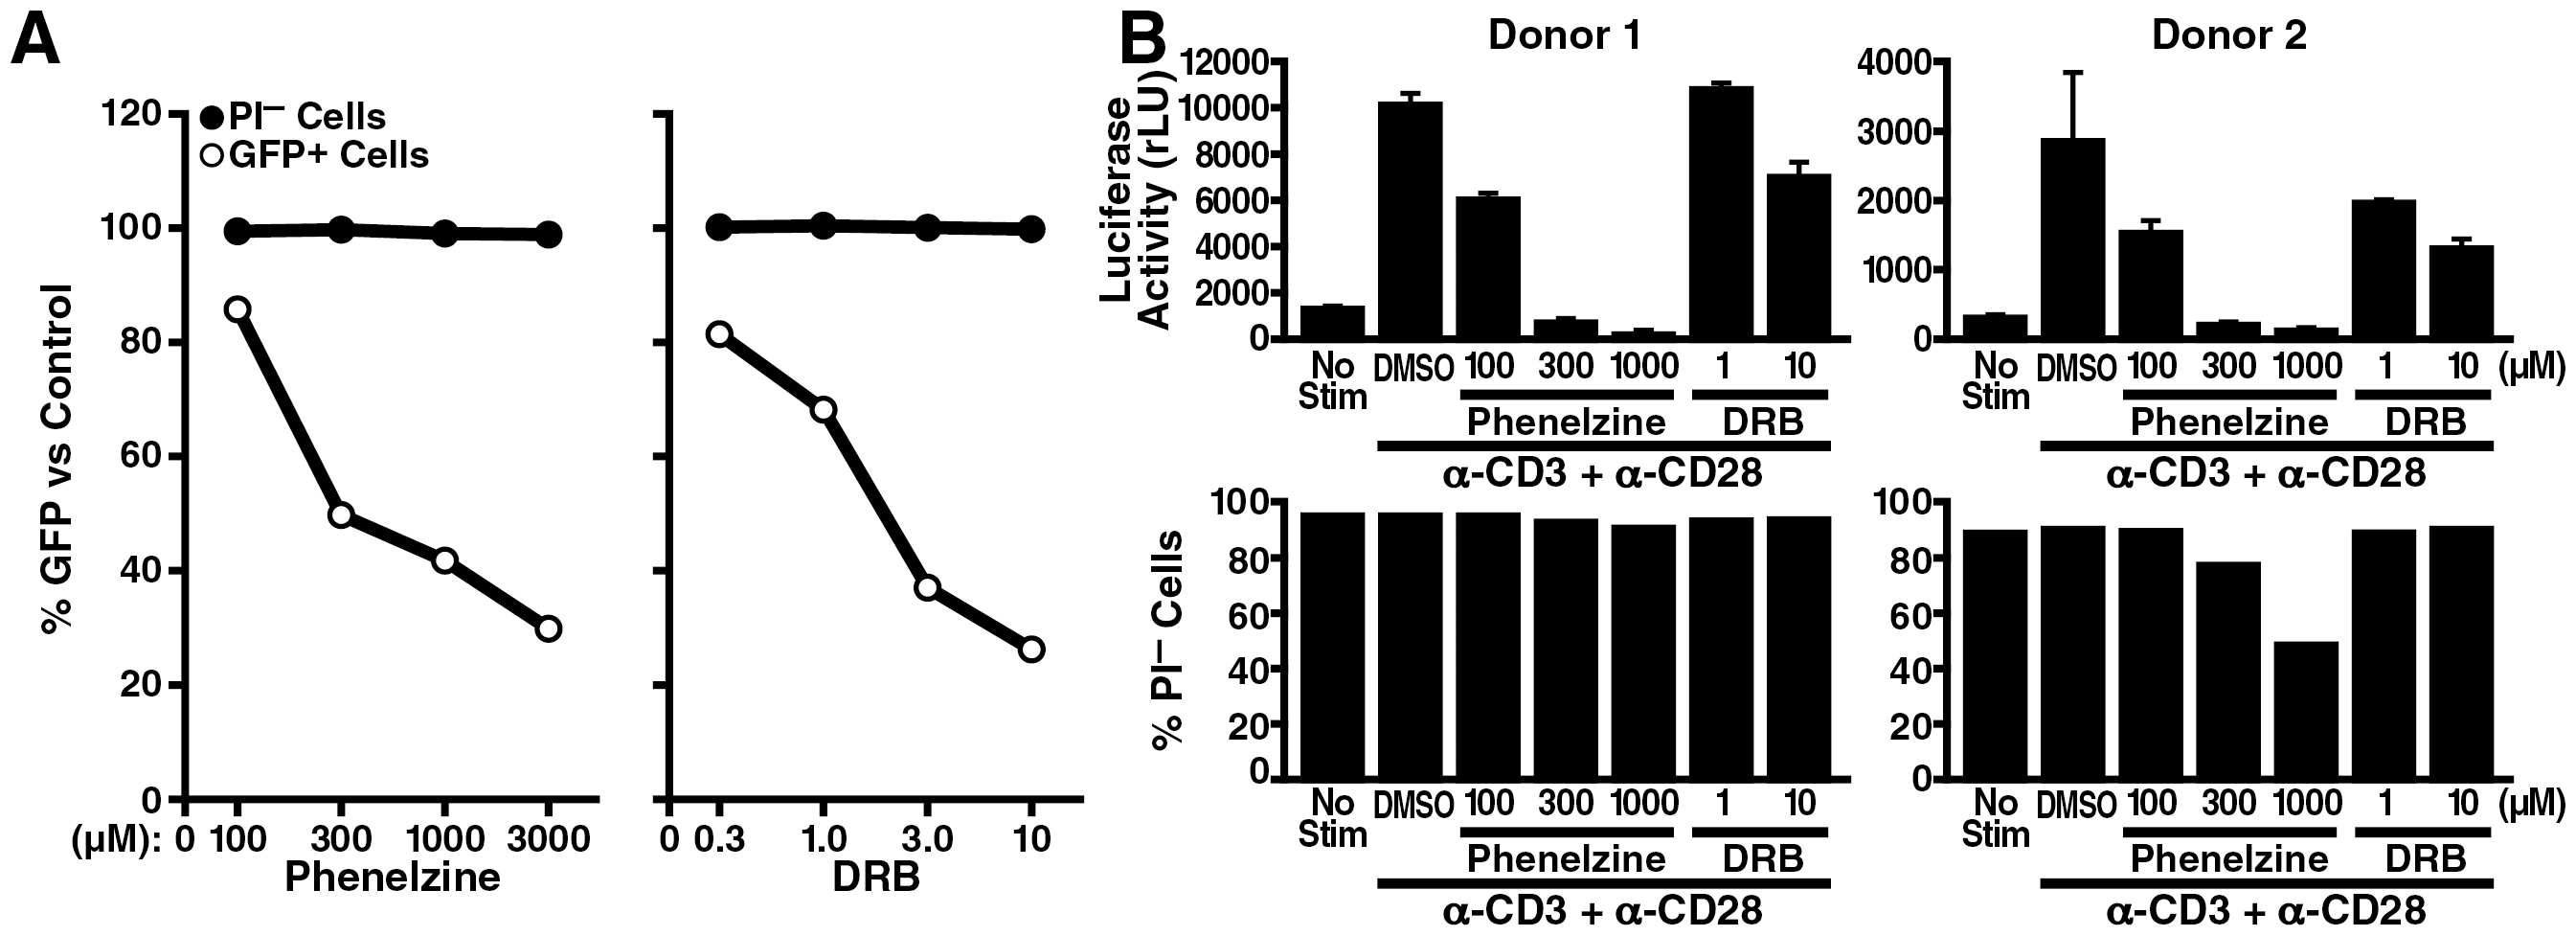 LSD1/KDM1 as a potential drug target in HIV transcription.